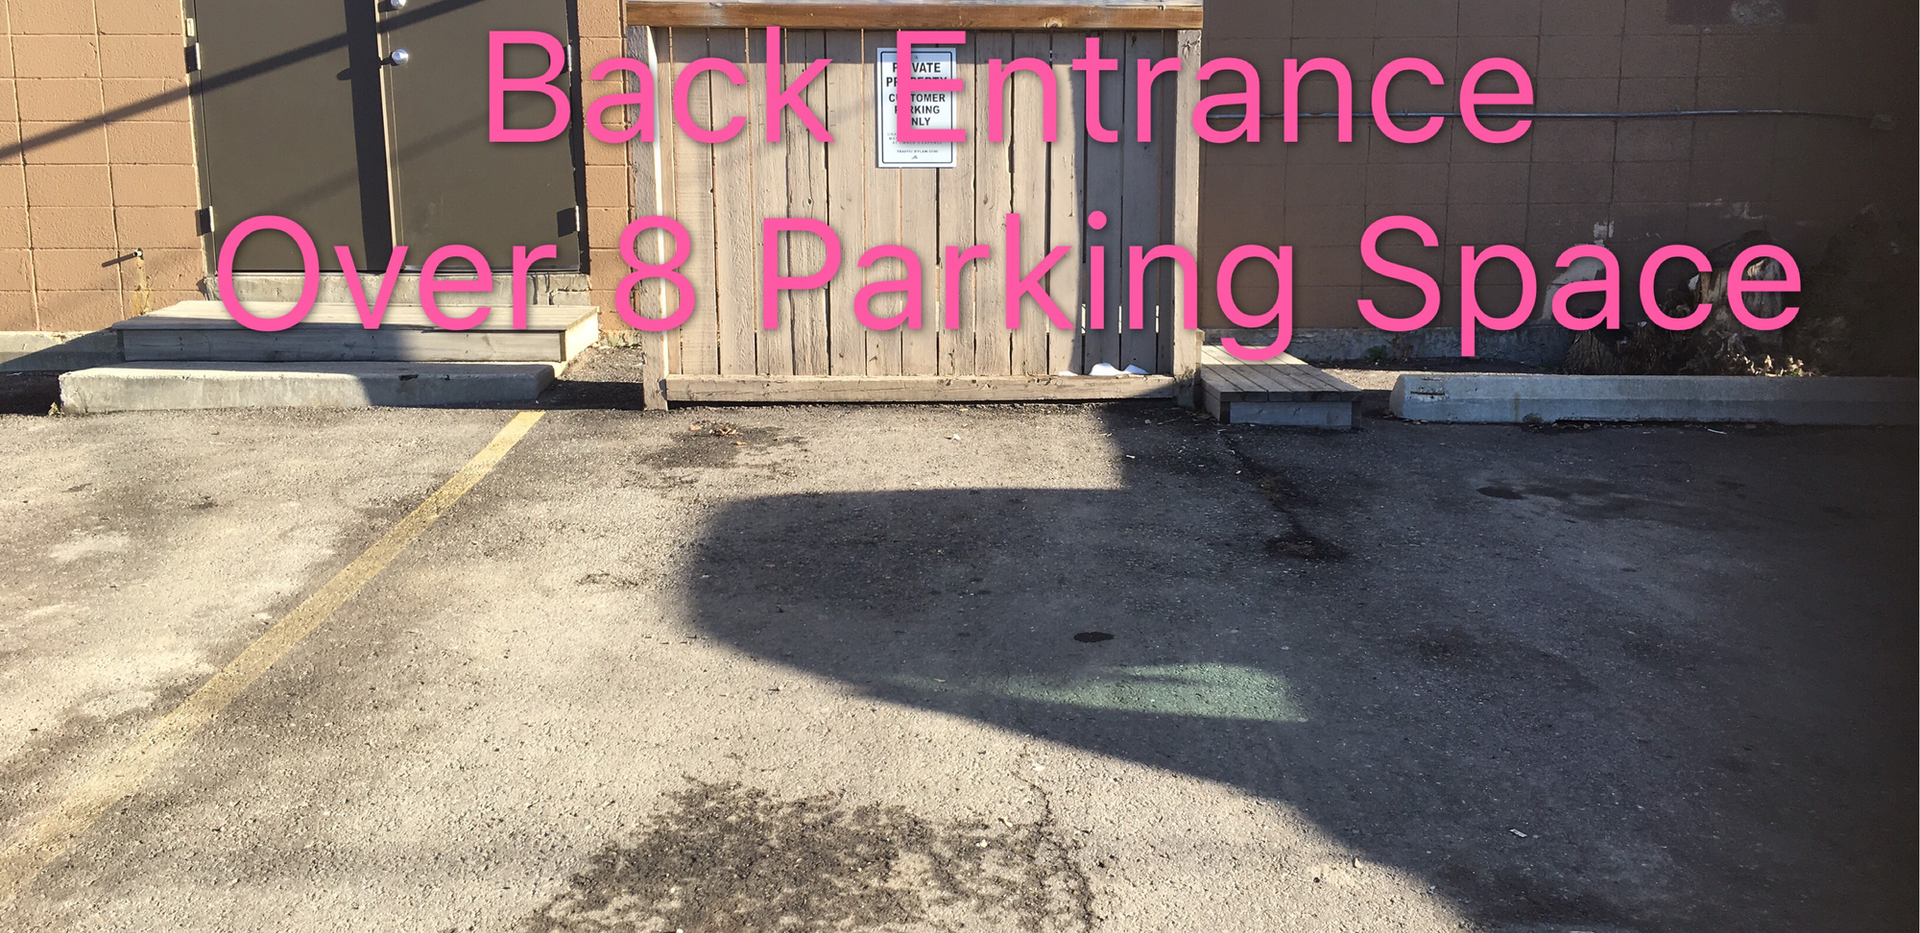 Back Parking and Entrance